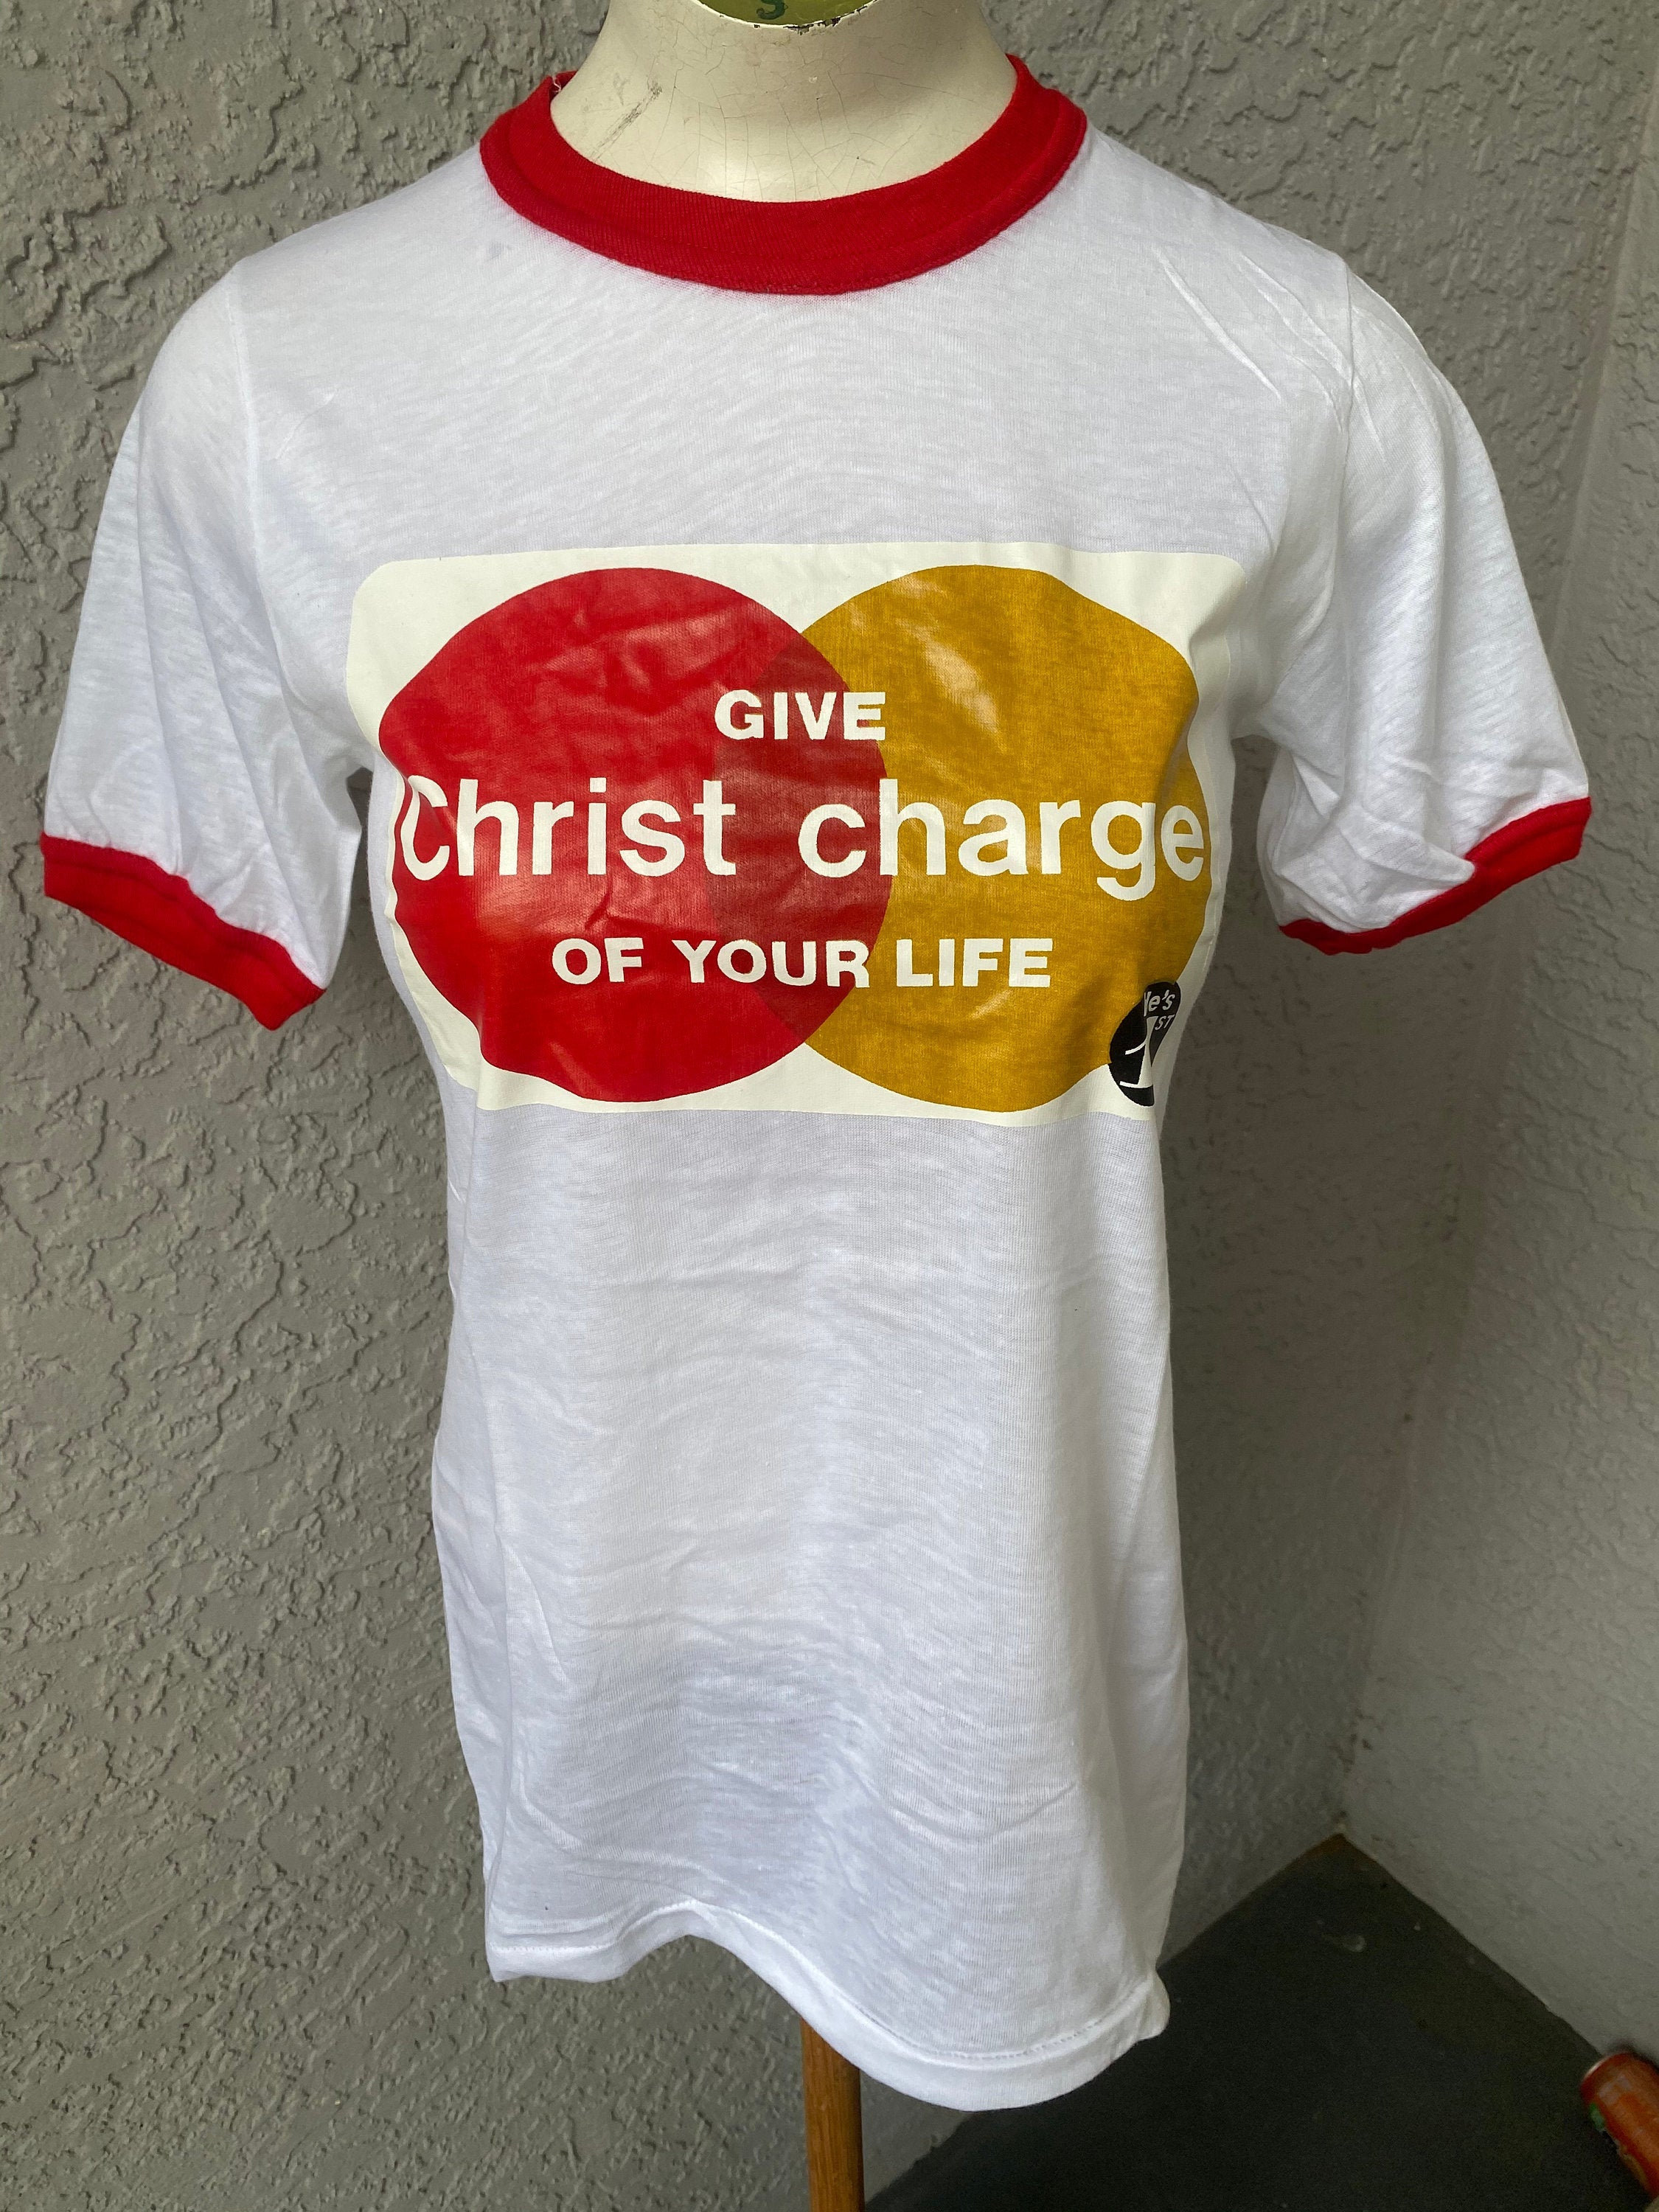 80s Tops, Shirts, T-shirts, Blouse   90s T-shirts Give Christ Charge Of Your Life 1980S Vintage Ringer T-Shirt - Size Small $17.00 AT vintagedancer.com